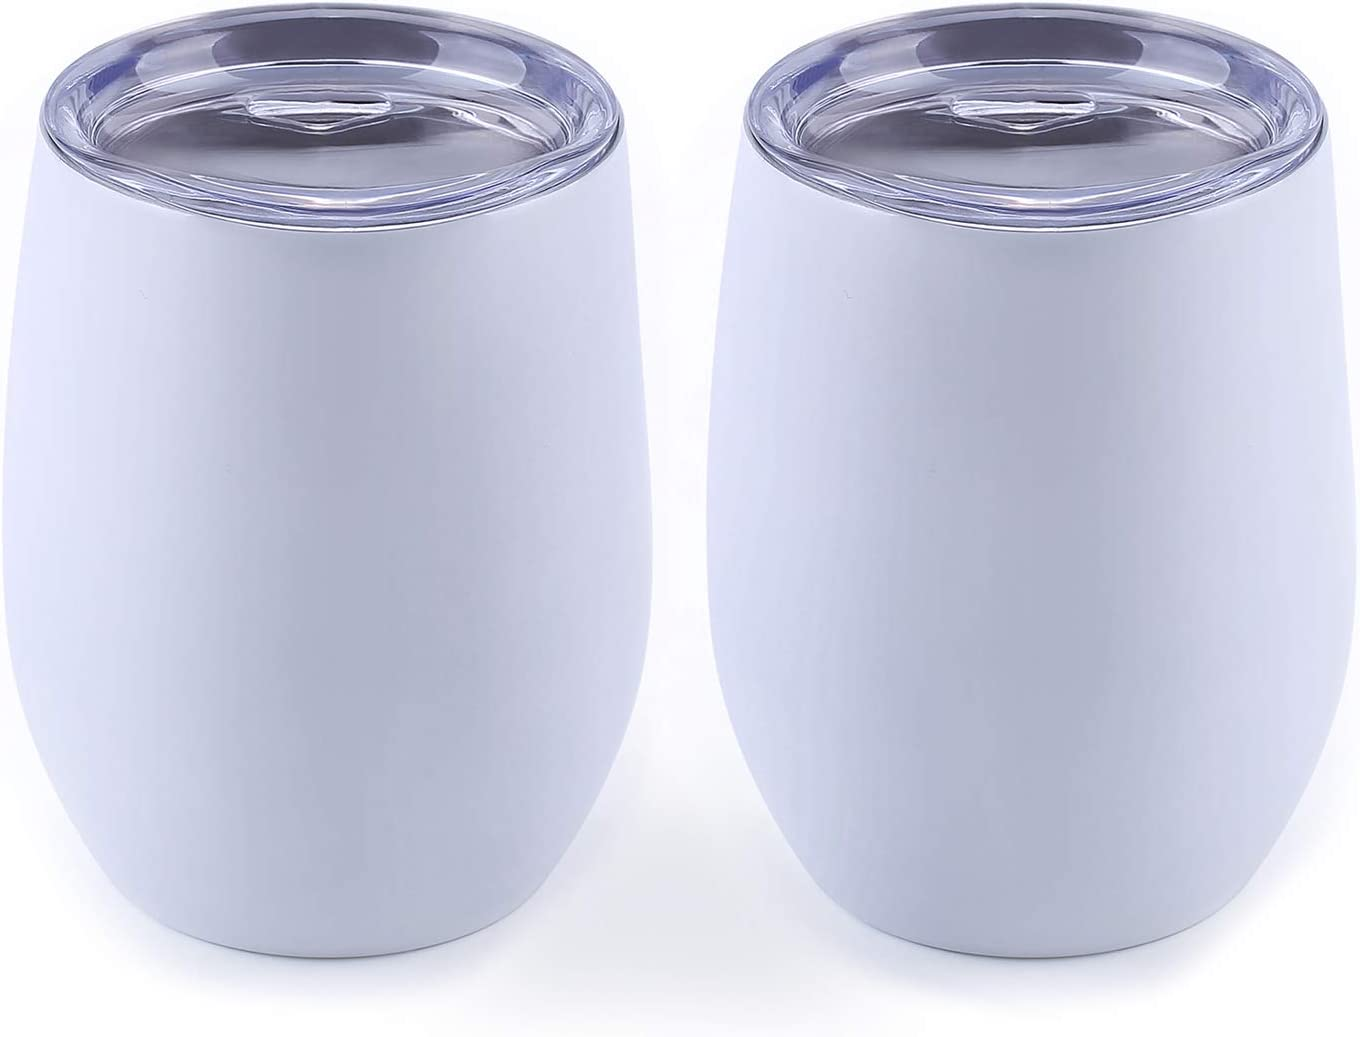 WBRWP Stainless-Steel Stemless Portable Tumbler Cup : 12oz Double-Vacuum Insulated Food Grade Stainless Steel Reusable Travel Tumbler Cup Mug with Lid, 2 Pieces-White